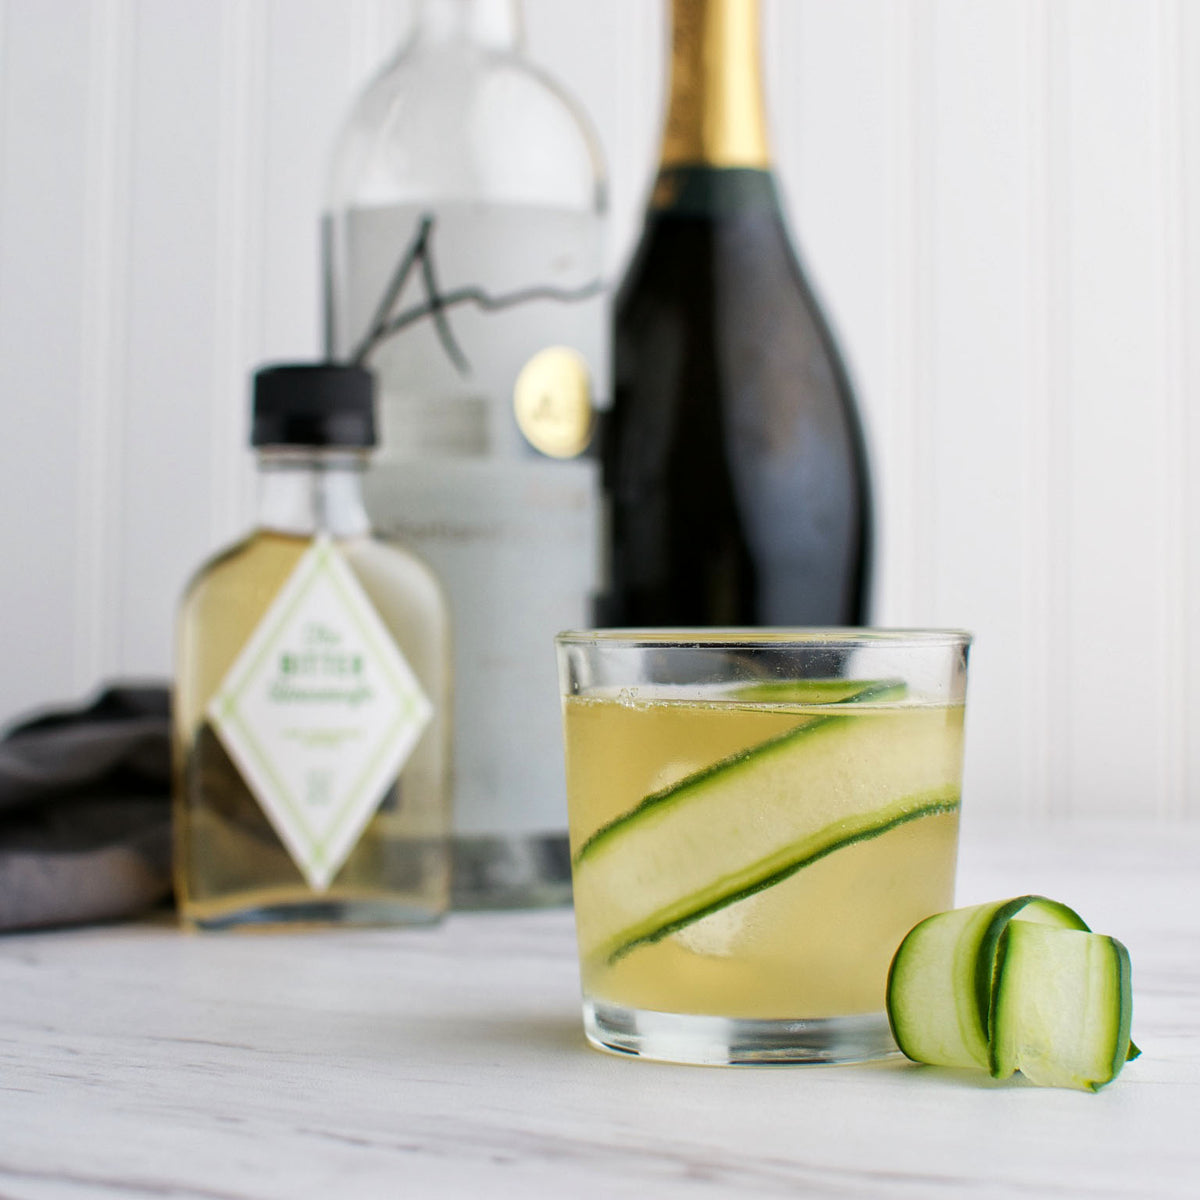 A cocktail with cucumber peels in a clear glass and a bottle of Lime and Coriander Bitters in the background